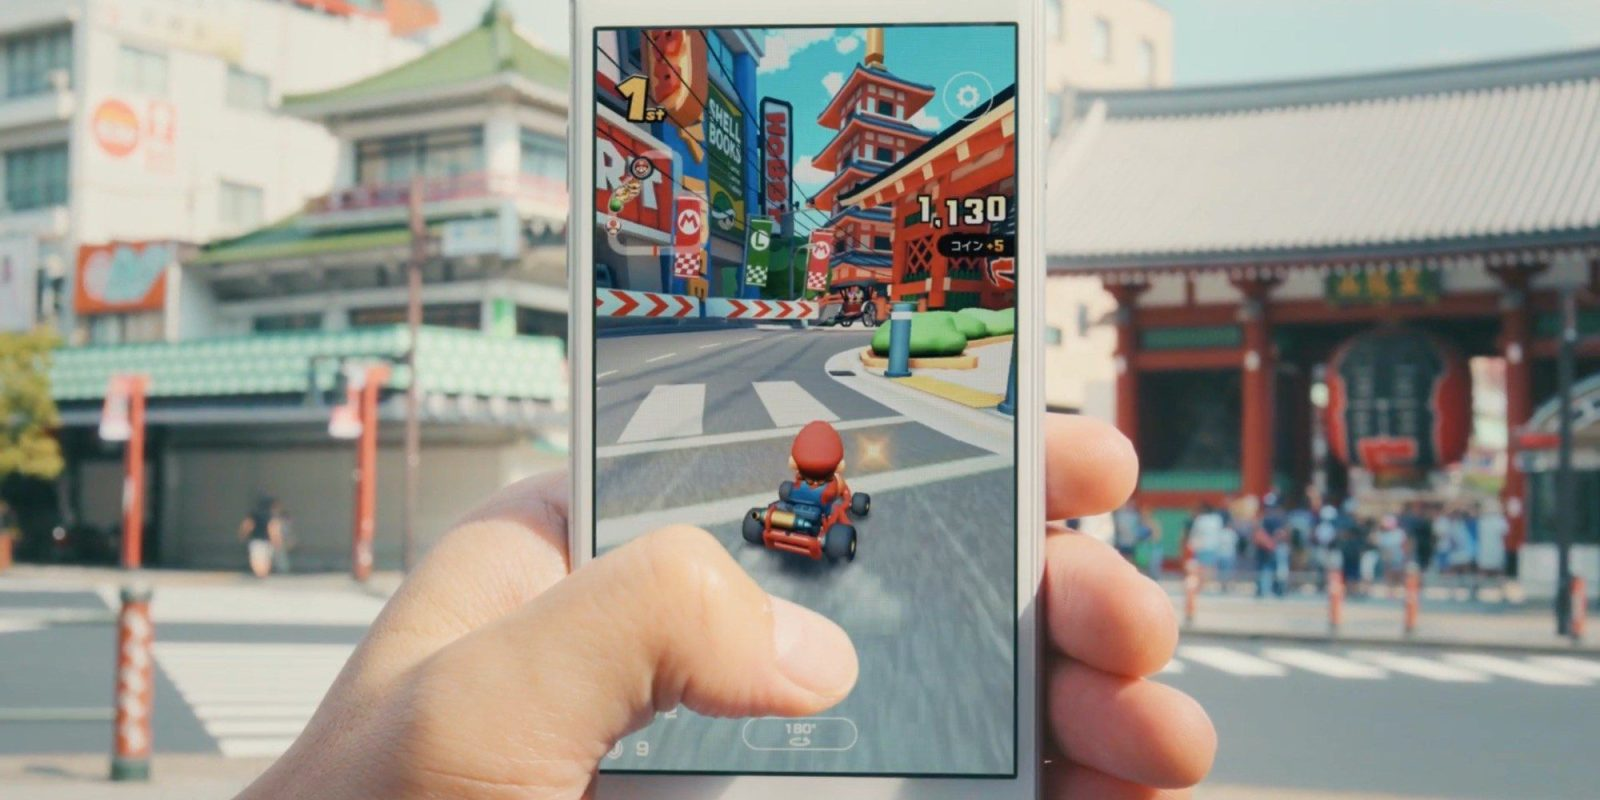 Mario Kart Tour becomes Nintendo's biggest mobile game launch yet with 90M downloads